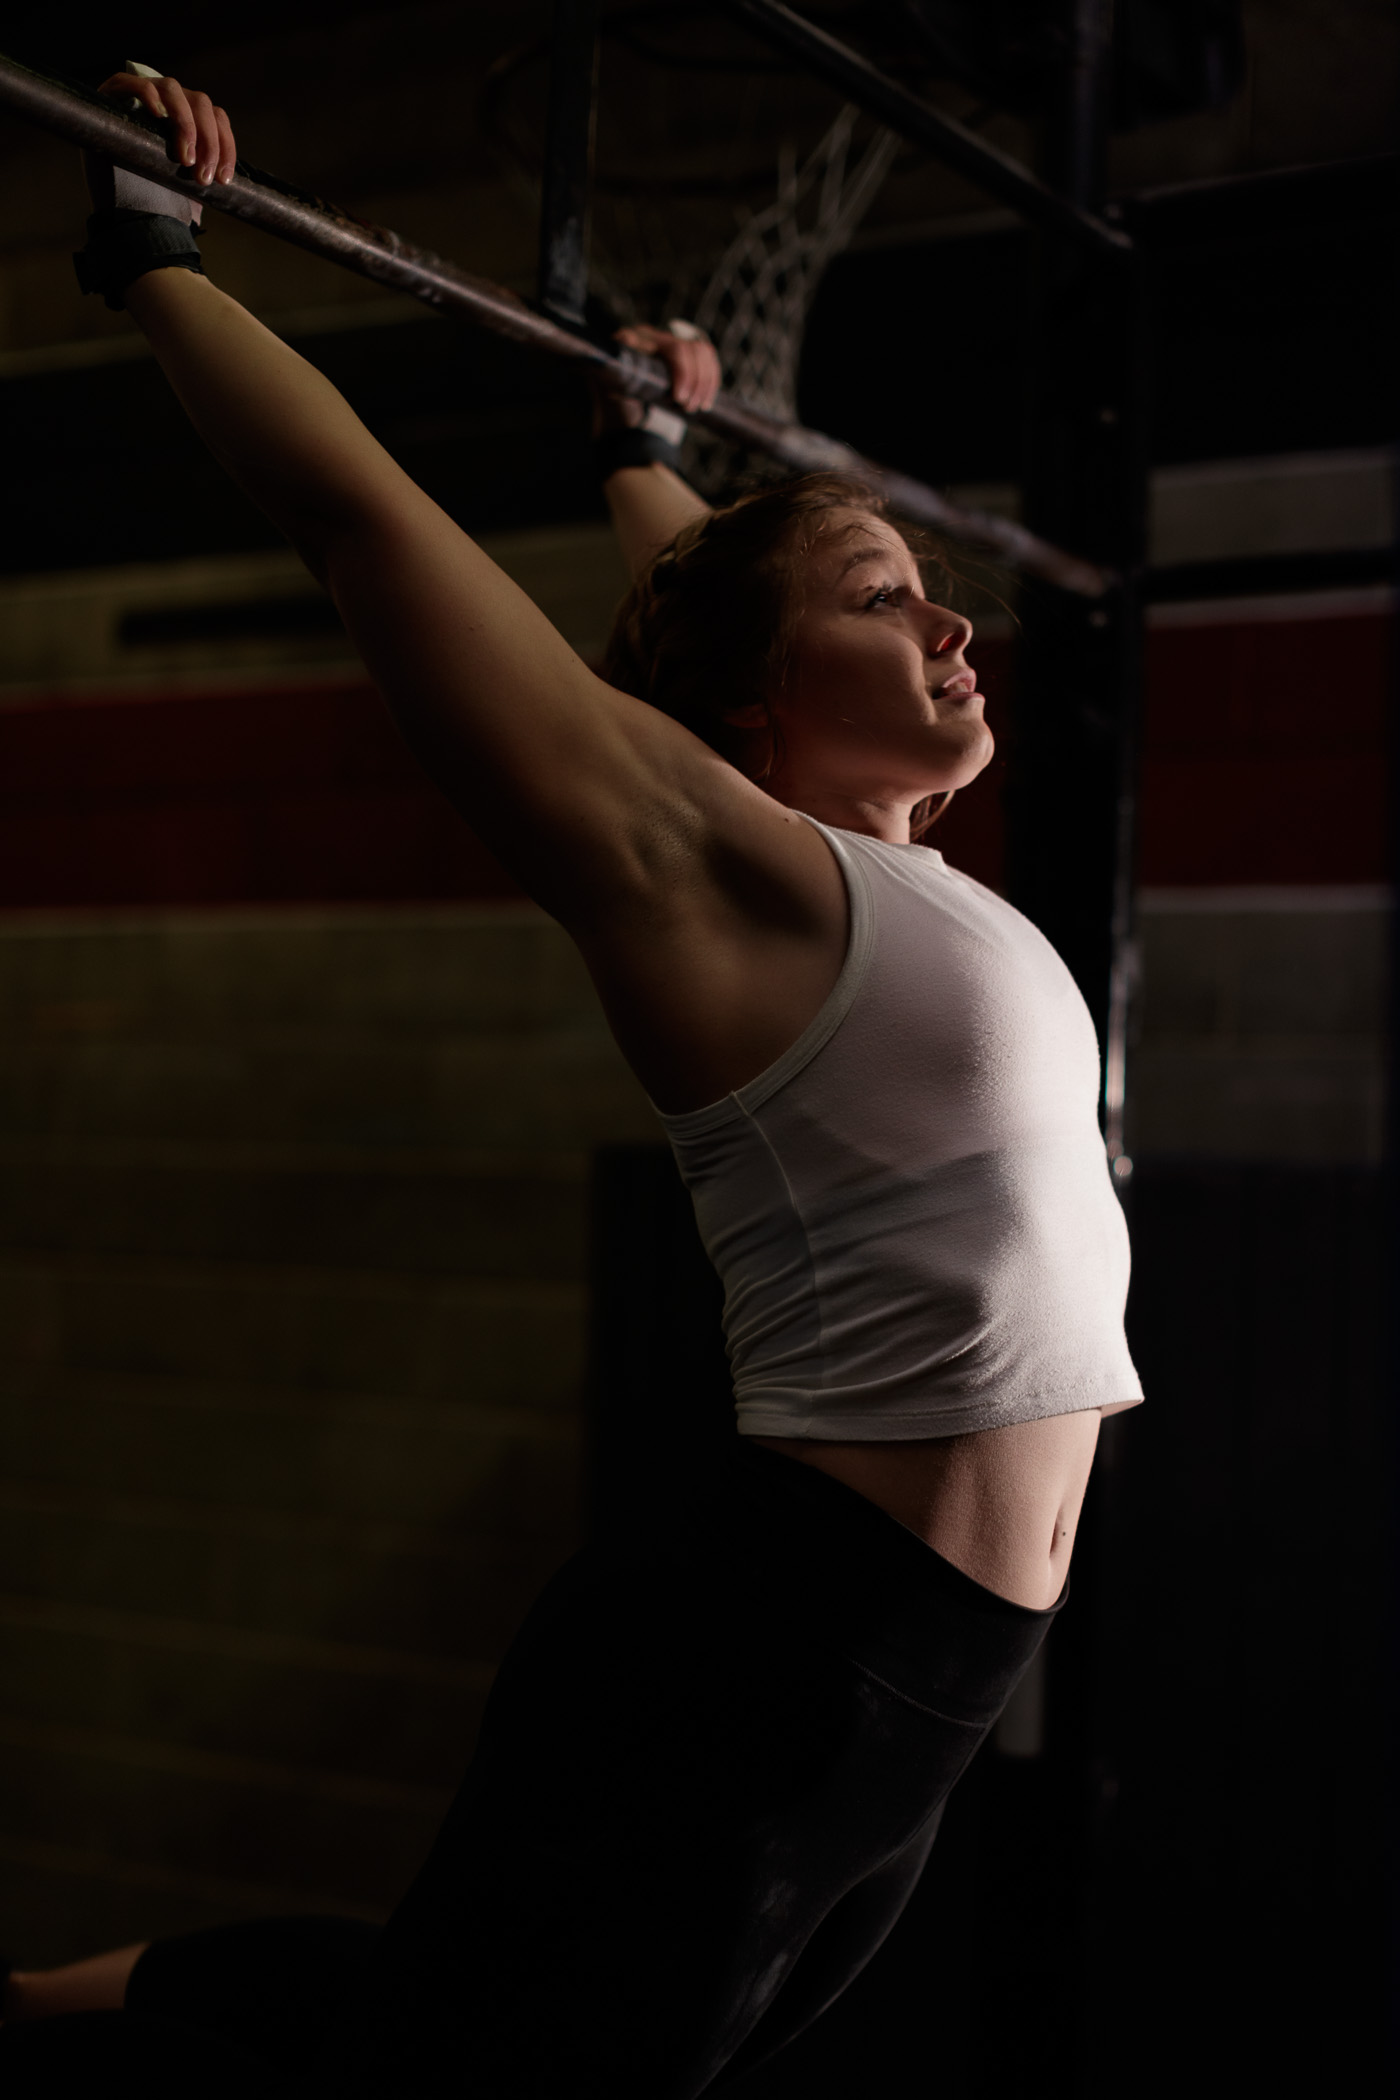 crossfit open-sports photography blog 04